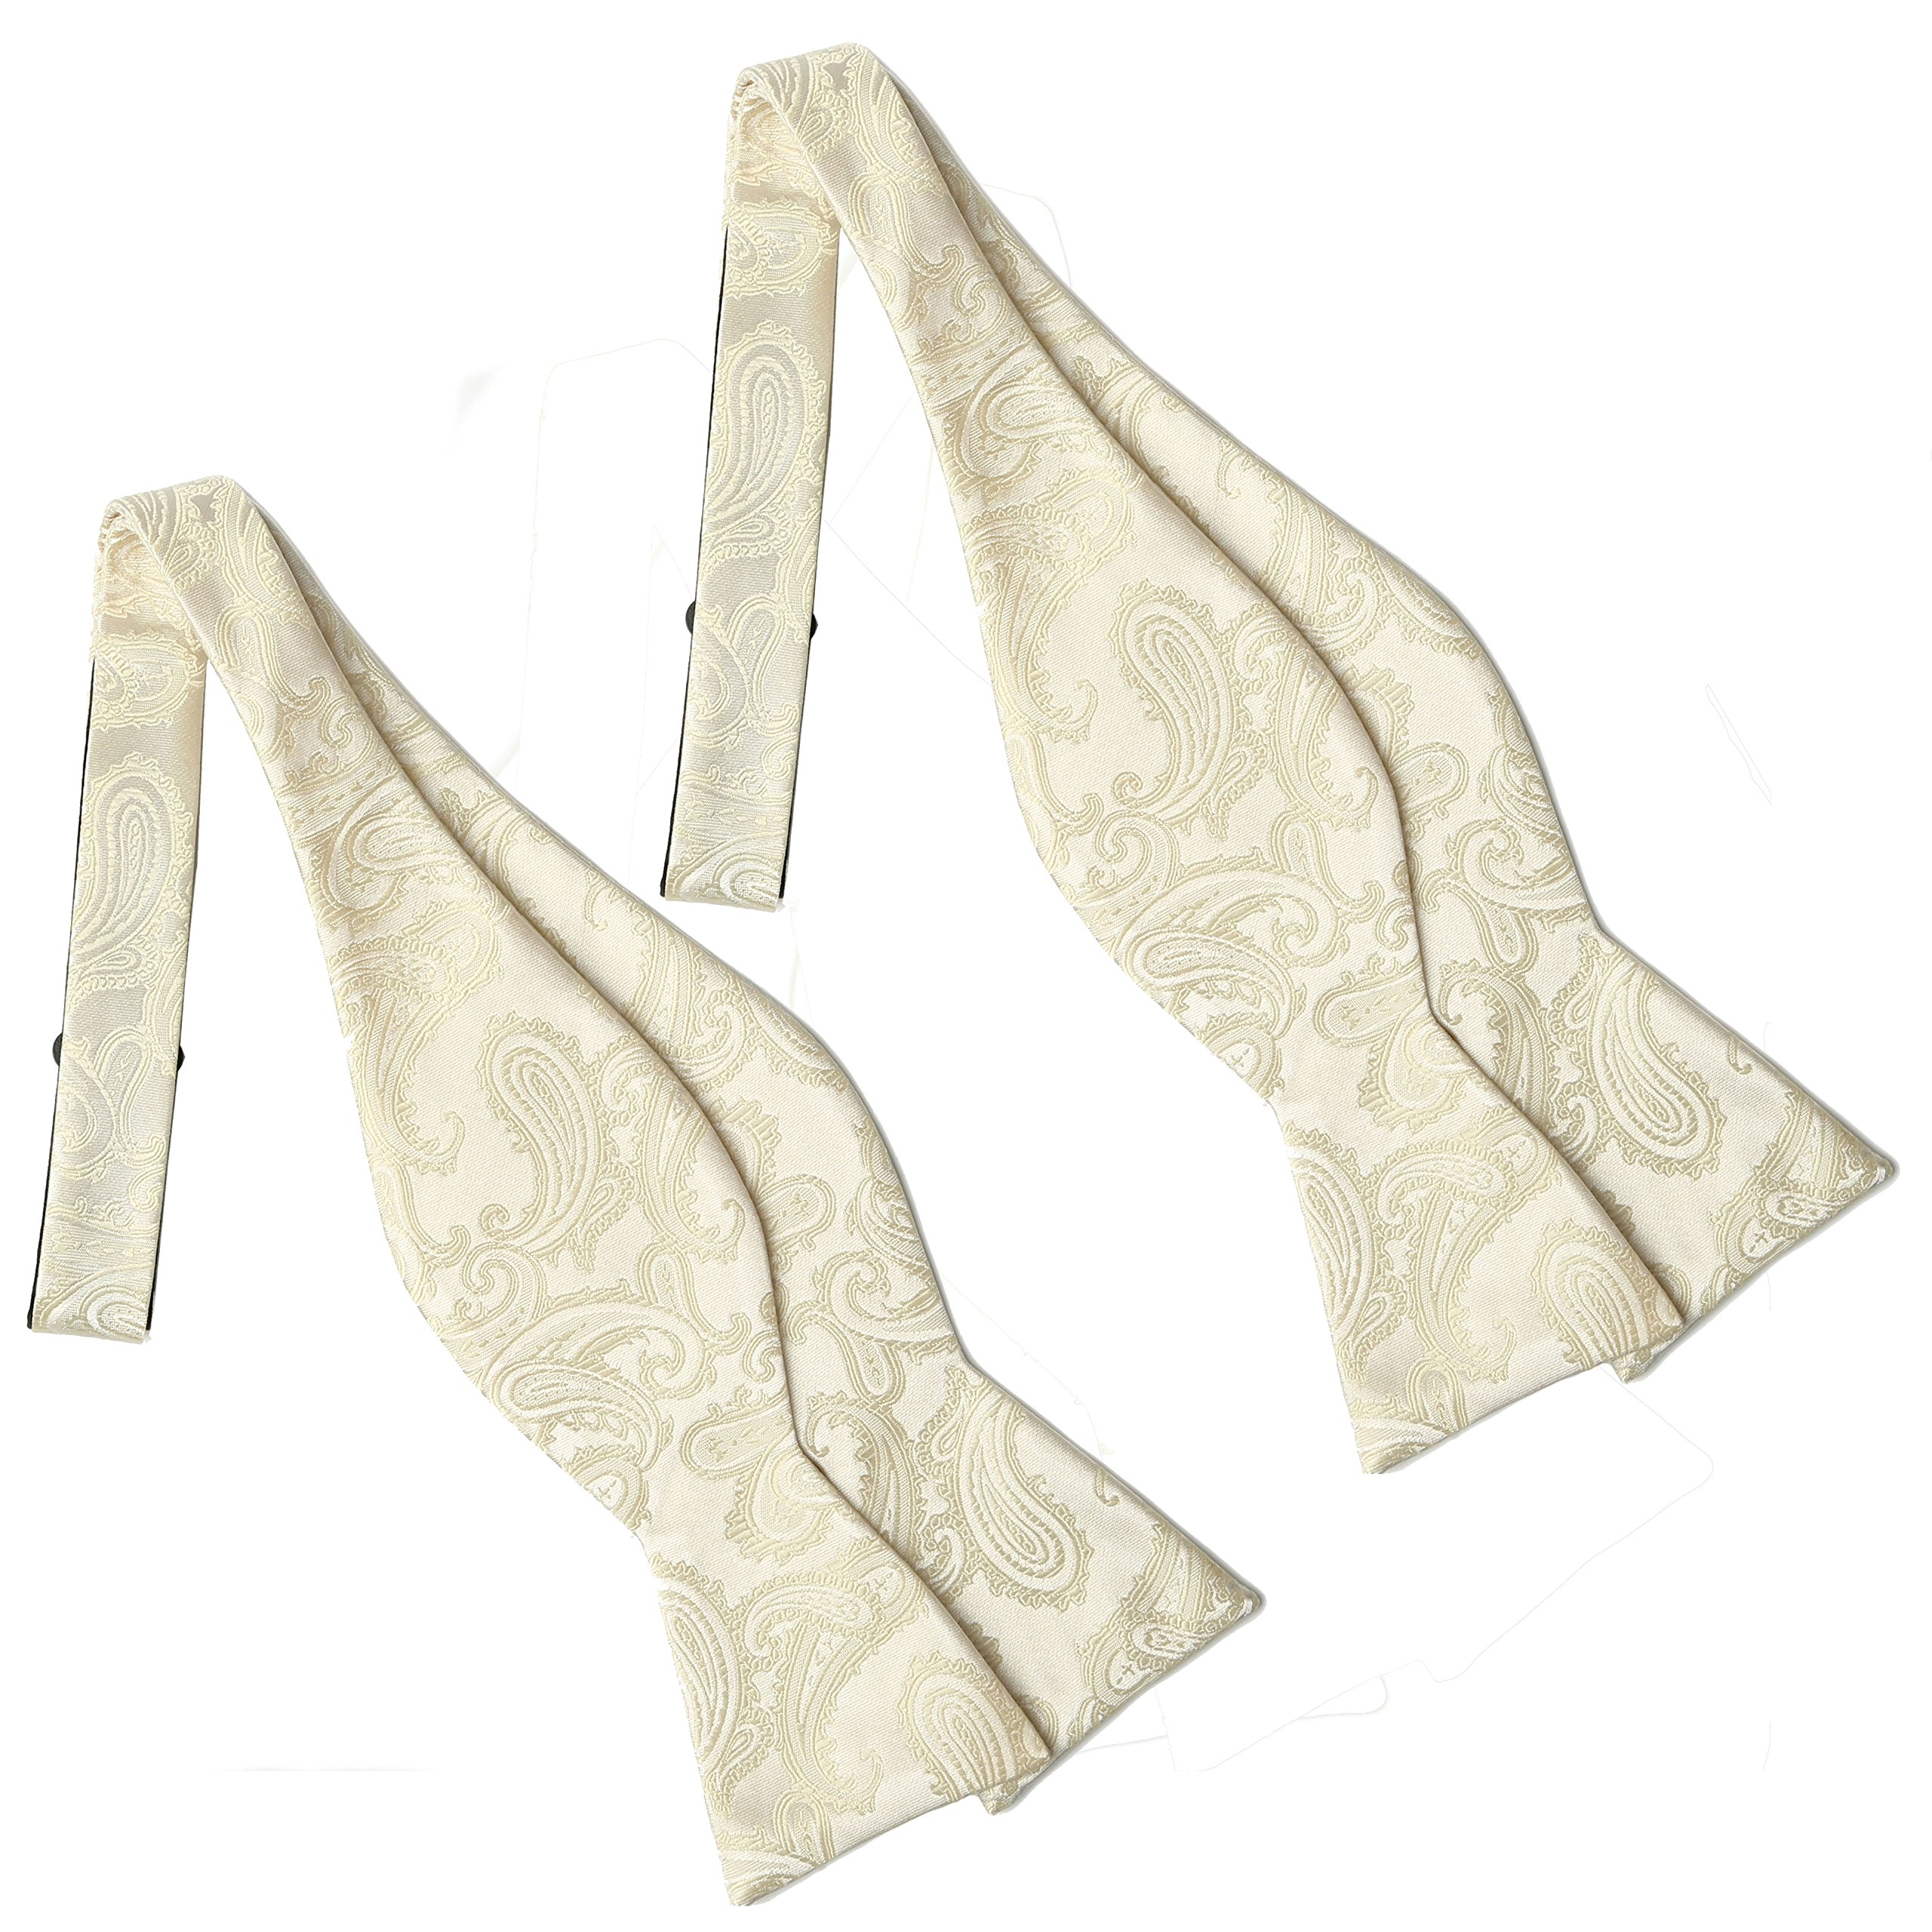 KissTies 2 PCS Bow Ties Cream Ivory Self Tie Paisley Bowties+ Gift Box